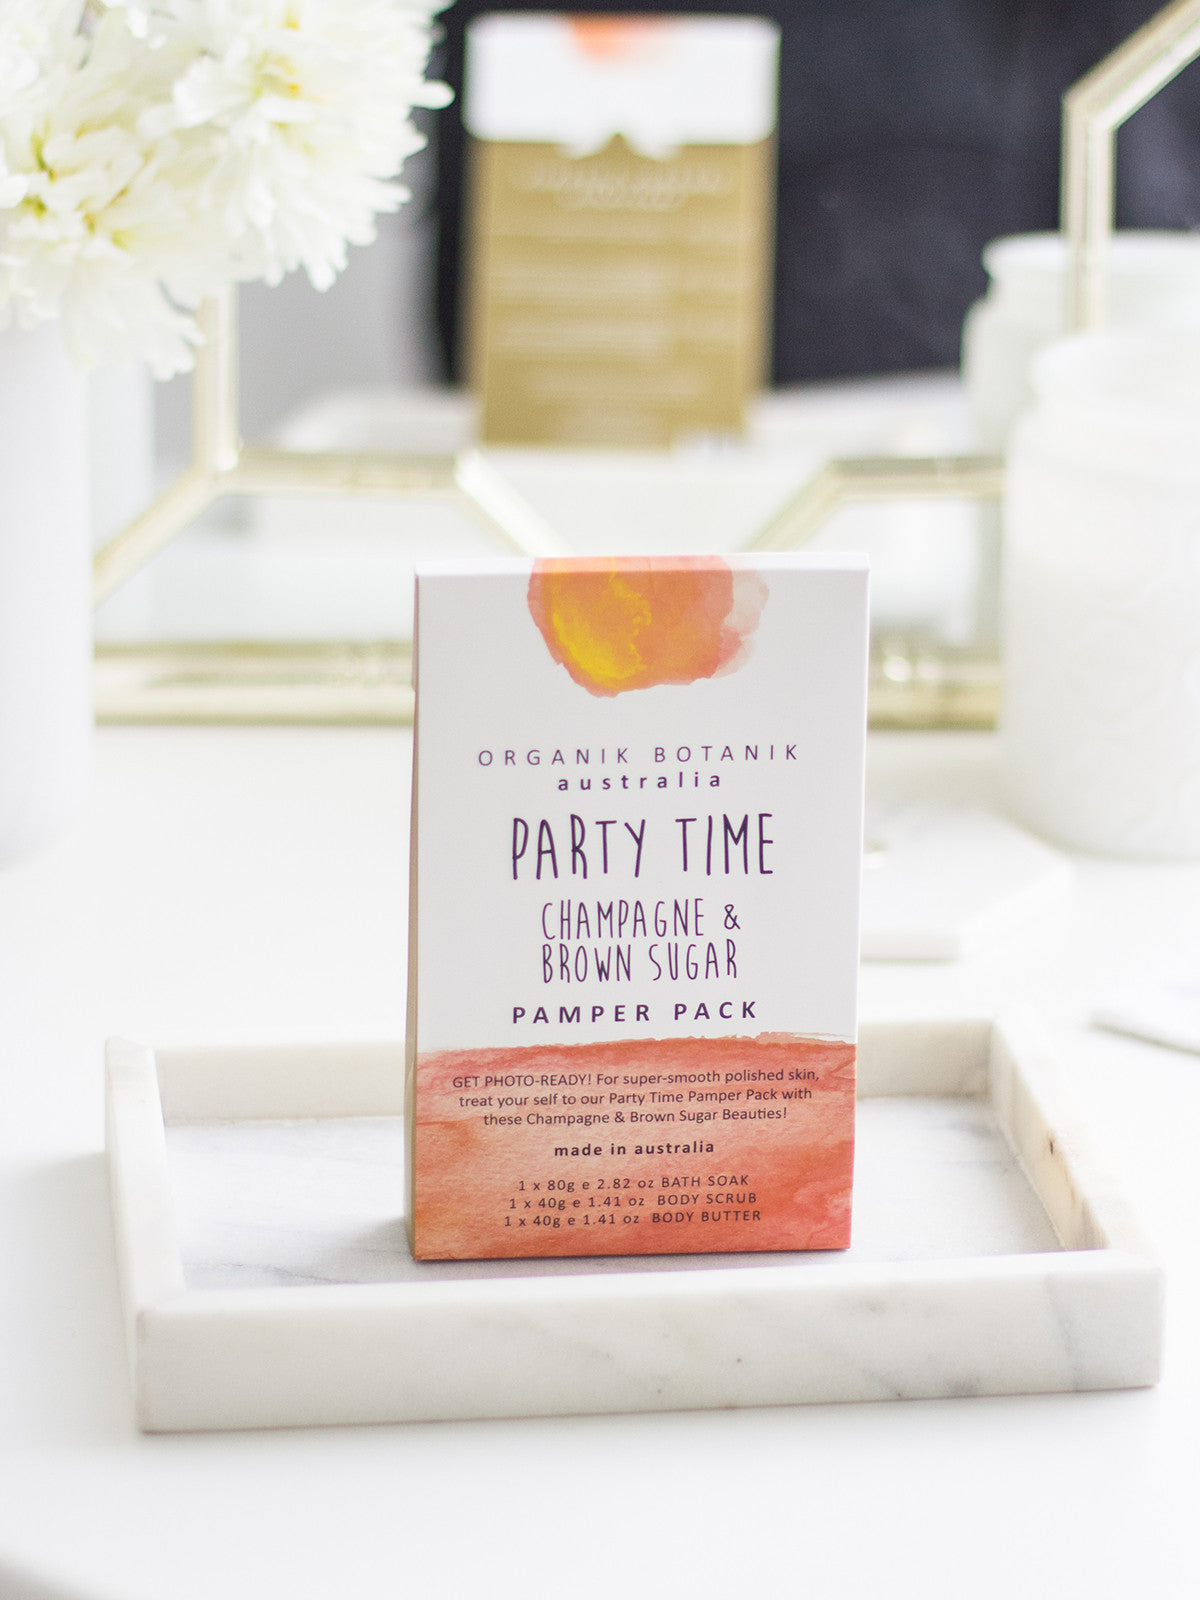 PARTY TIME CHAMPAGNE & BROWN SUGAR PAMPER PACK